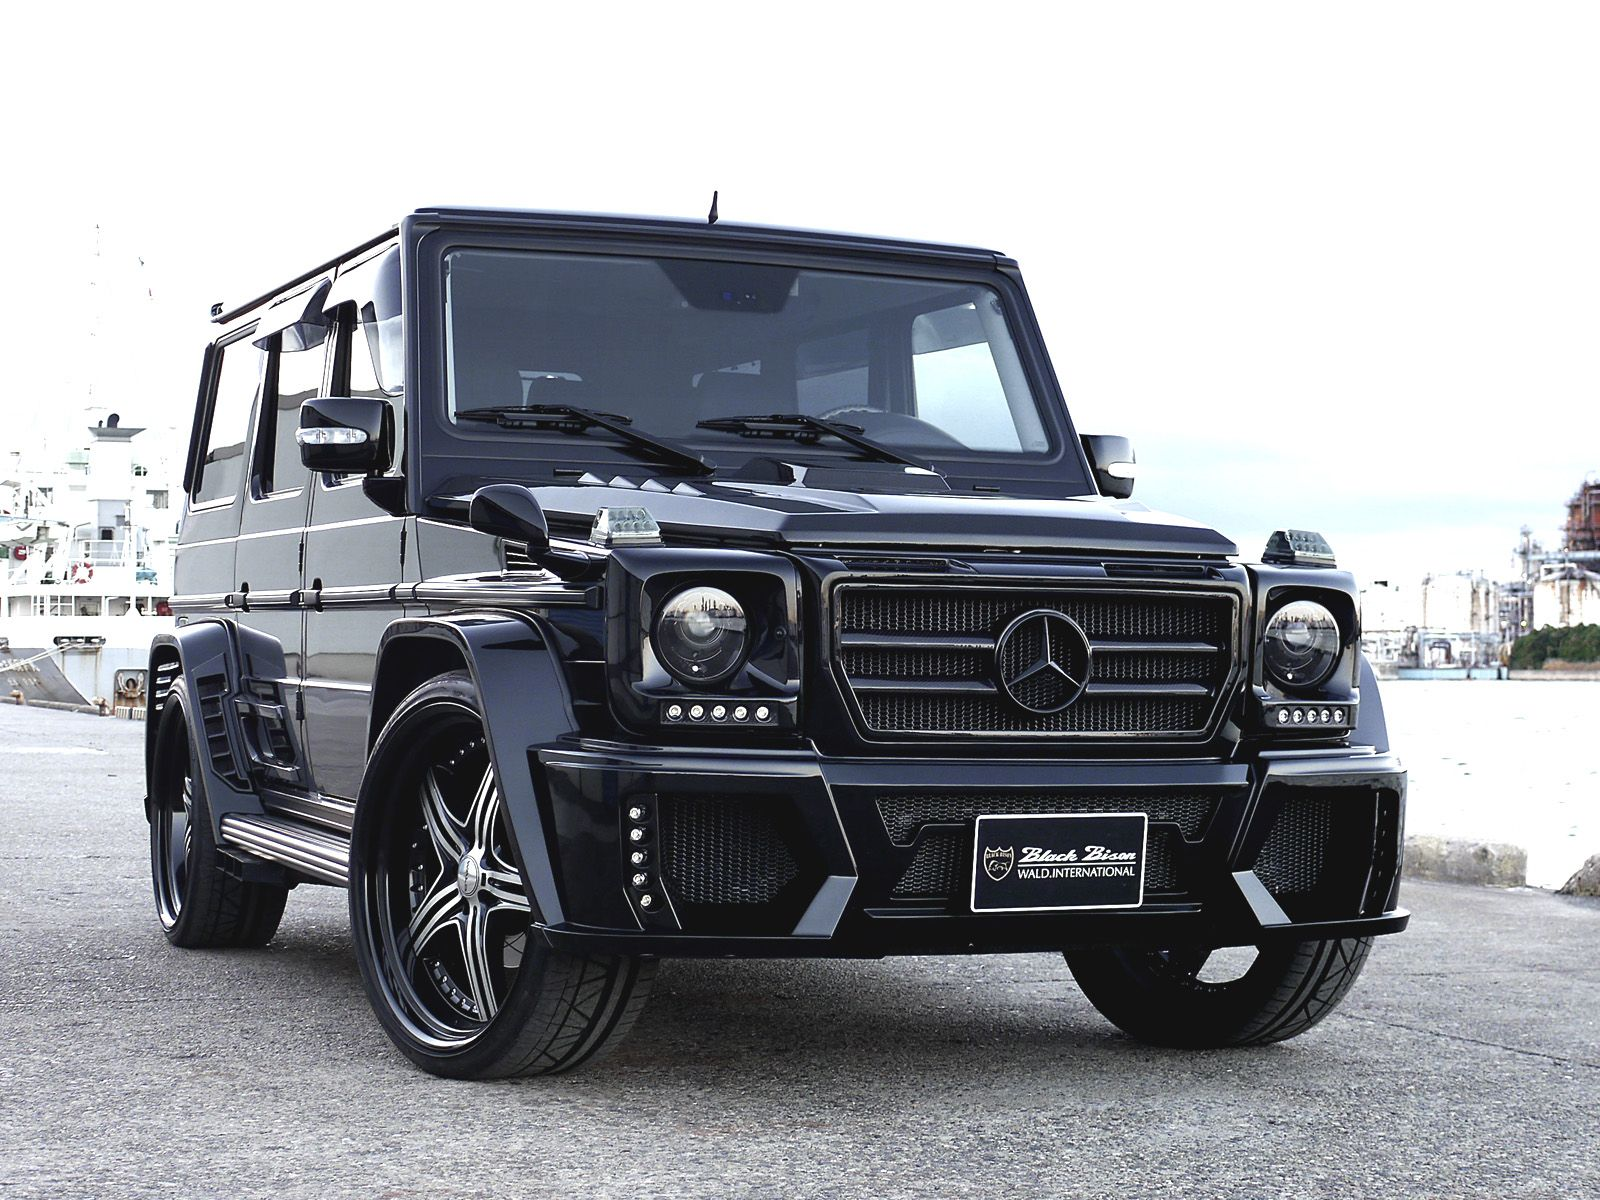 mercedes benz g class wald black bison edition want onemercedes benz g class wald black bison edition want one?